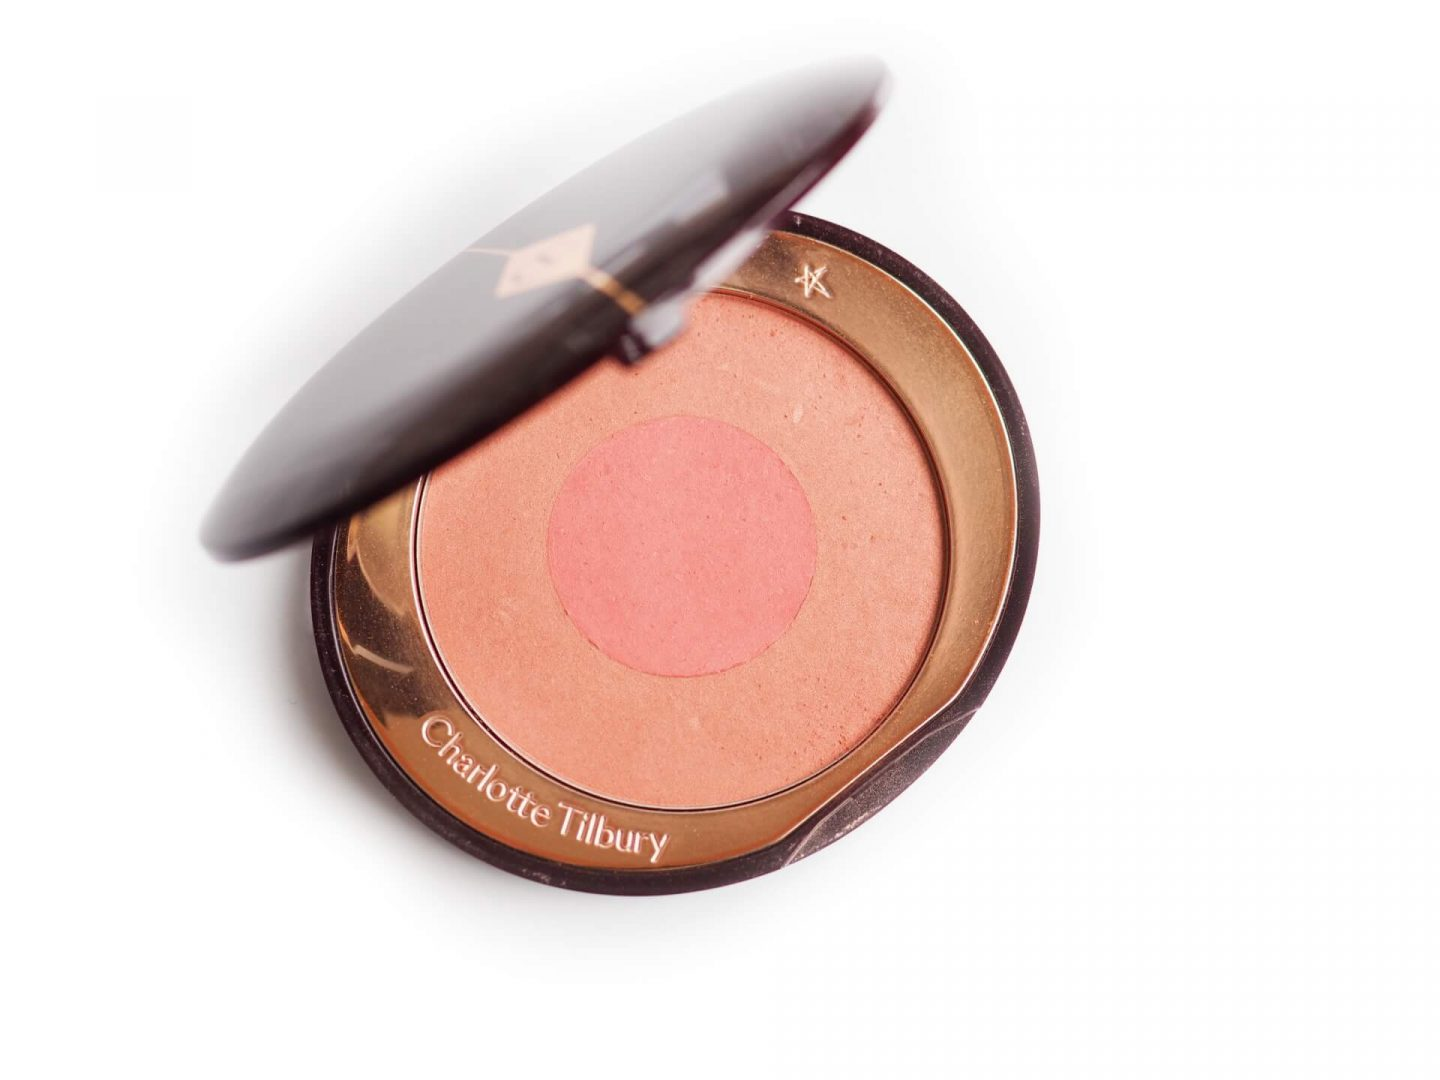 Charlotte Tilbury Ecstasy Cheek to Cheek Blusher